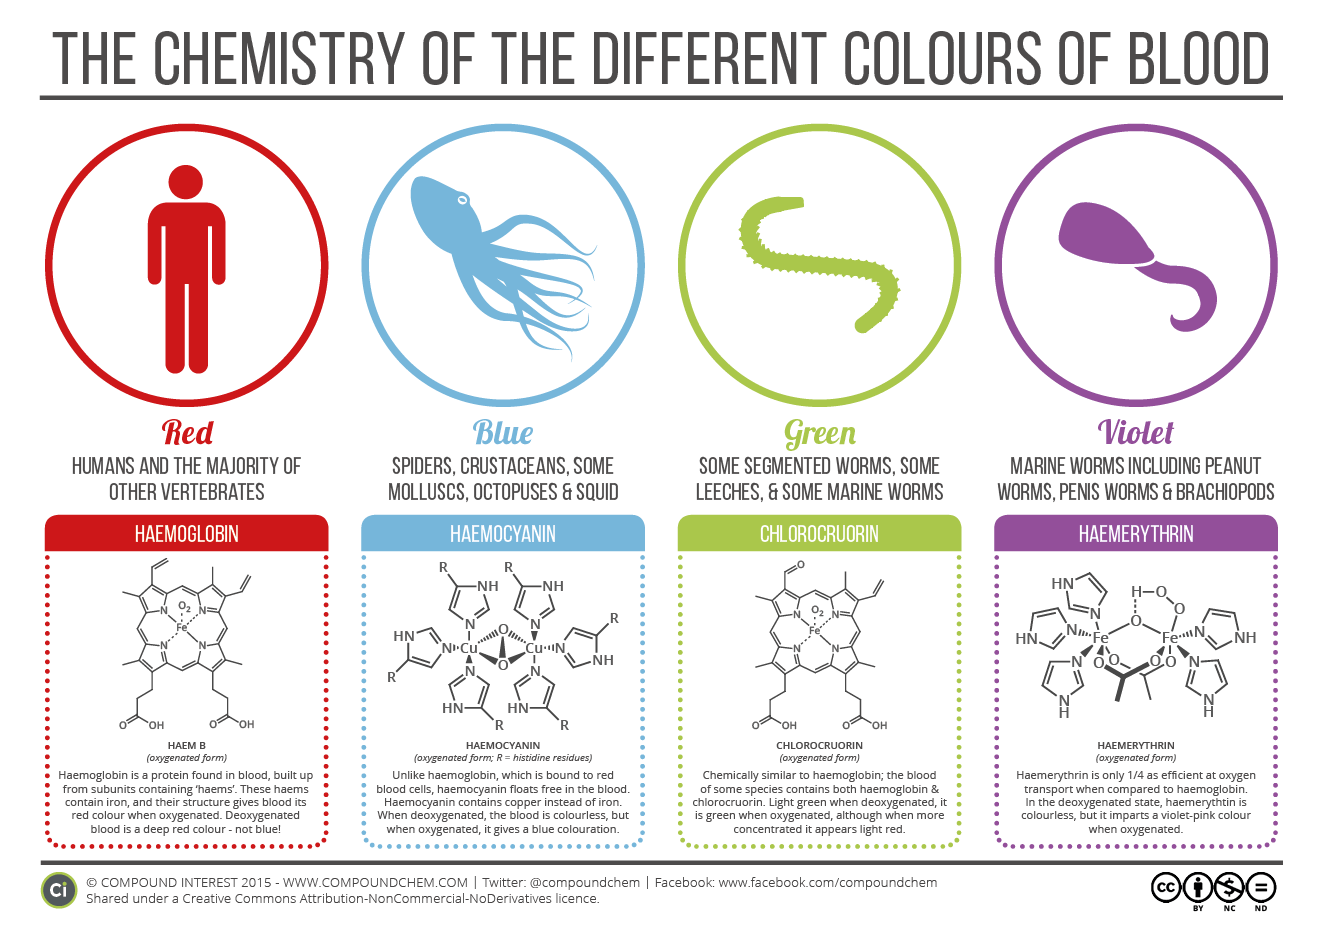 Blood colours in animals